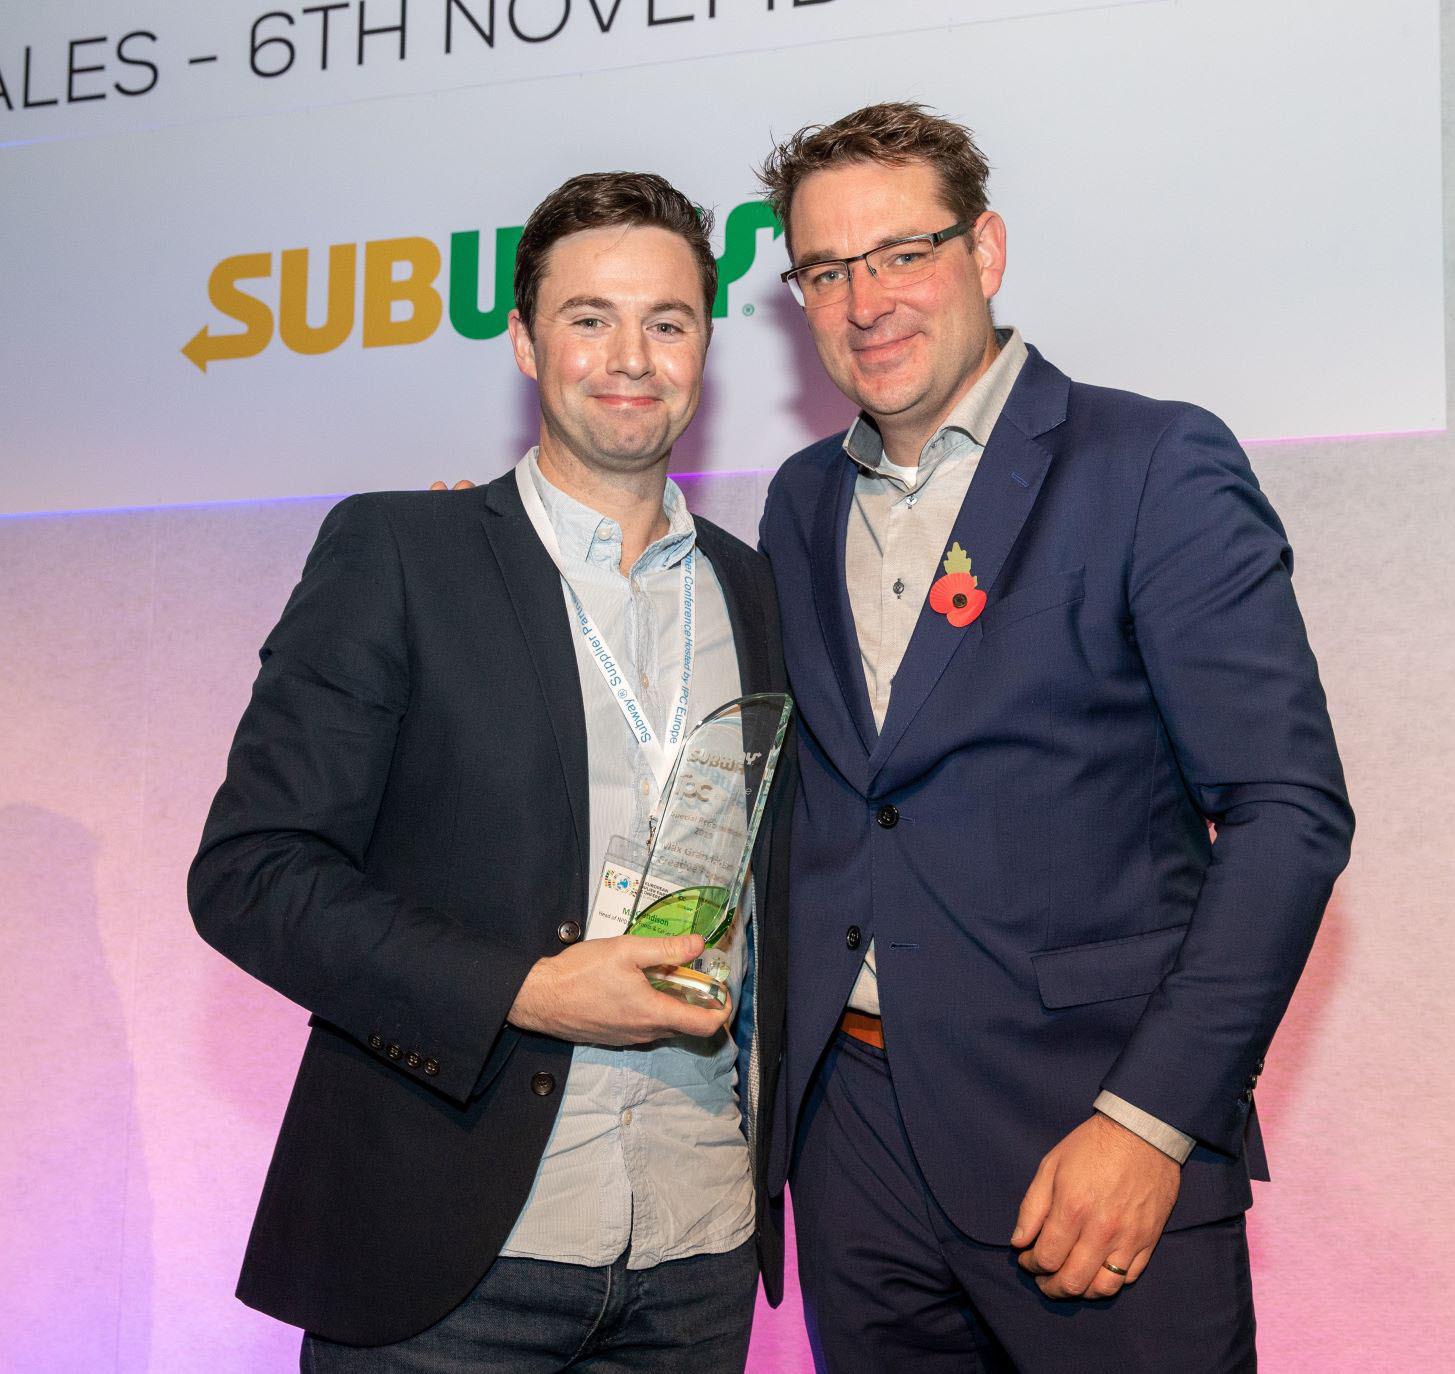 Subway Award v3